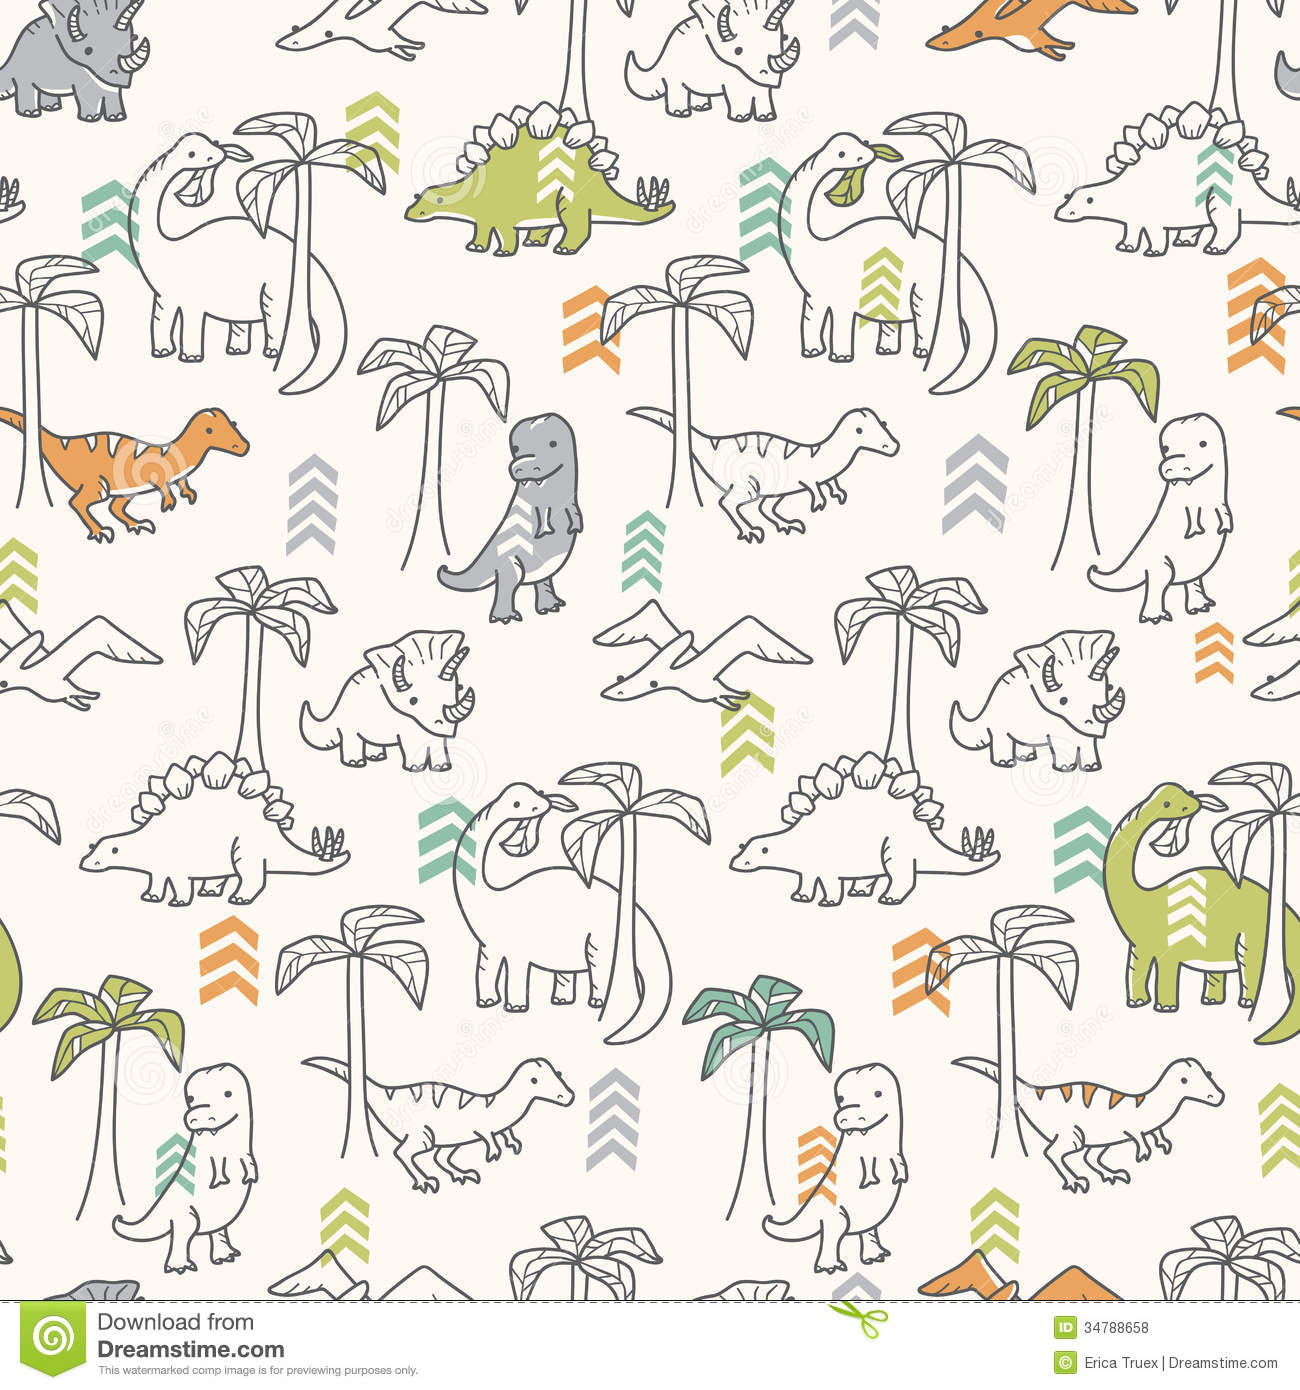 Dinosaur Pattern stock vector. Illustration of repeating - 34788658